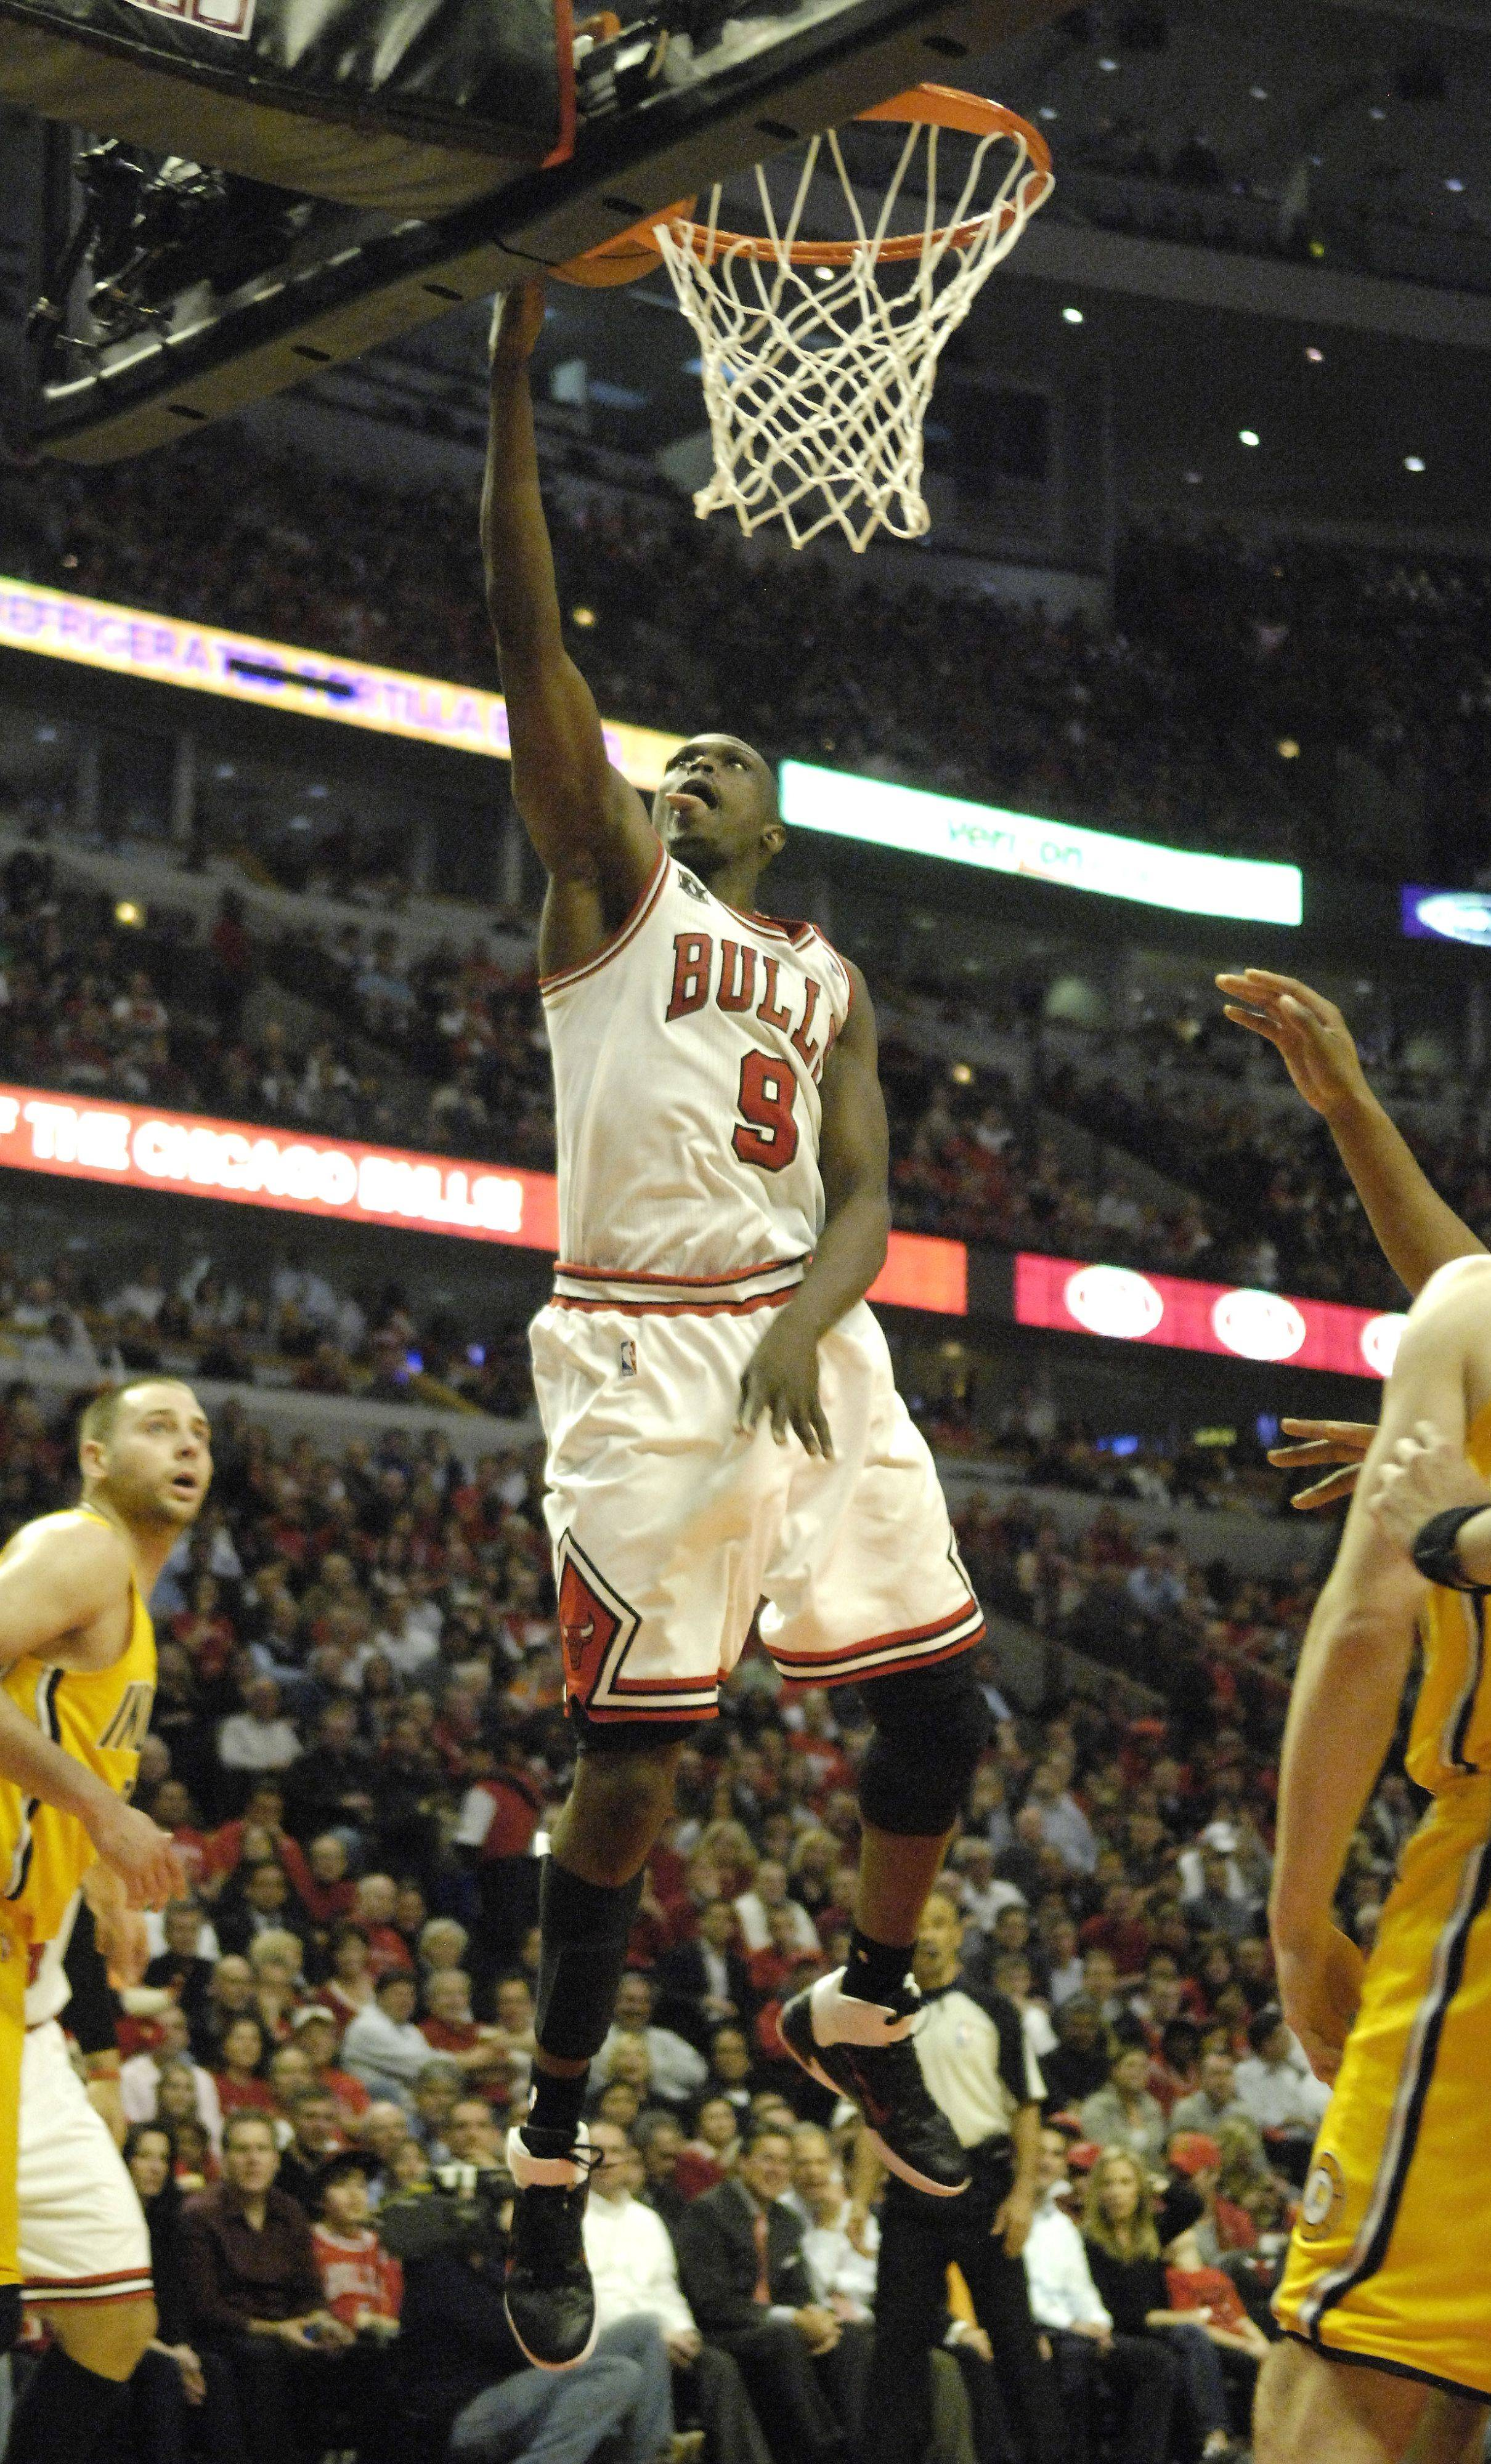 Chicago Bulls small forward Luol Deng drives and scores in an open lane Tuesday.